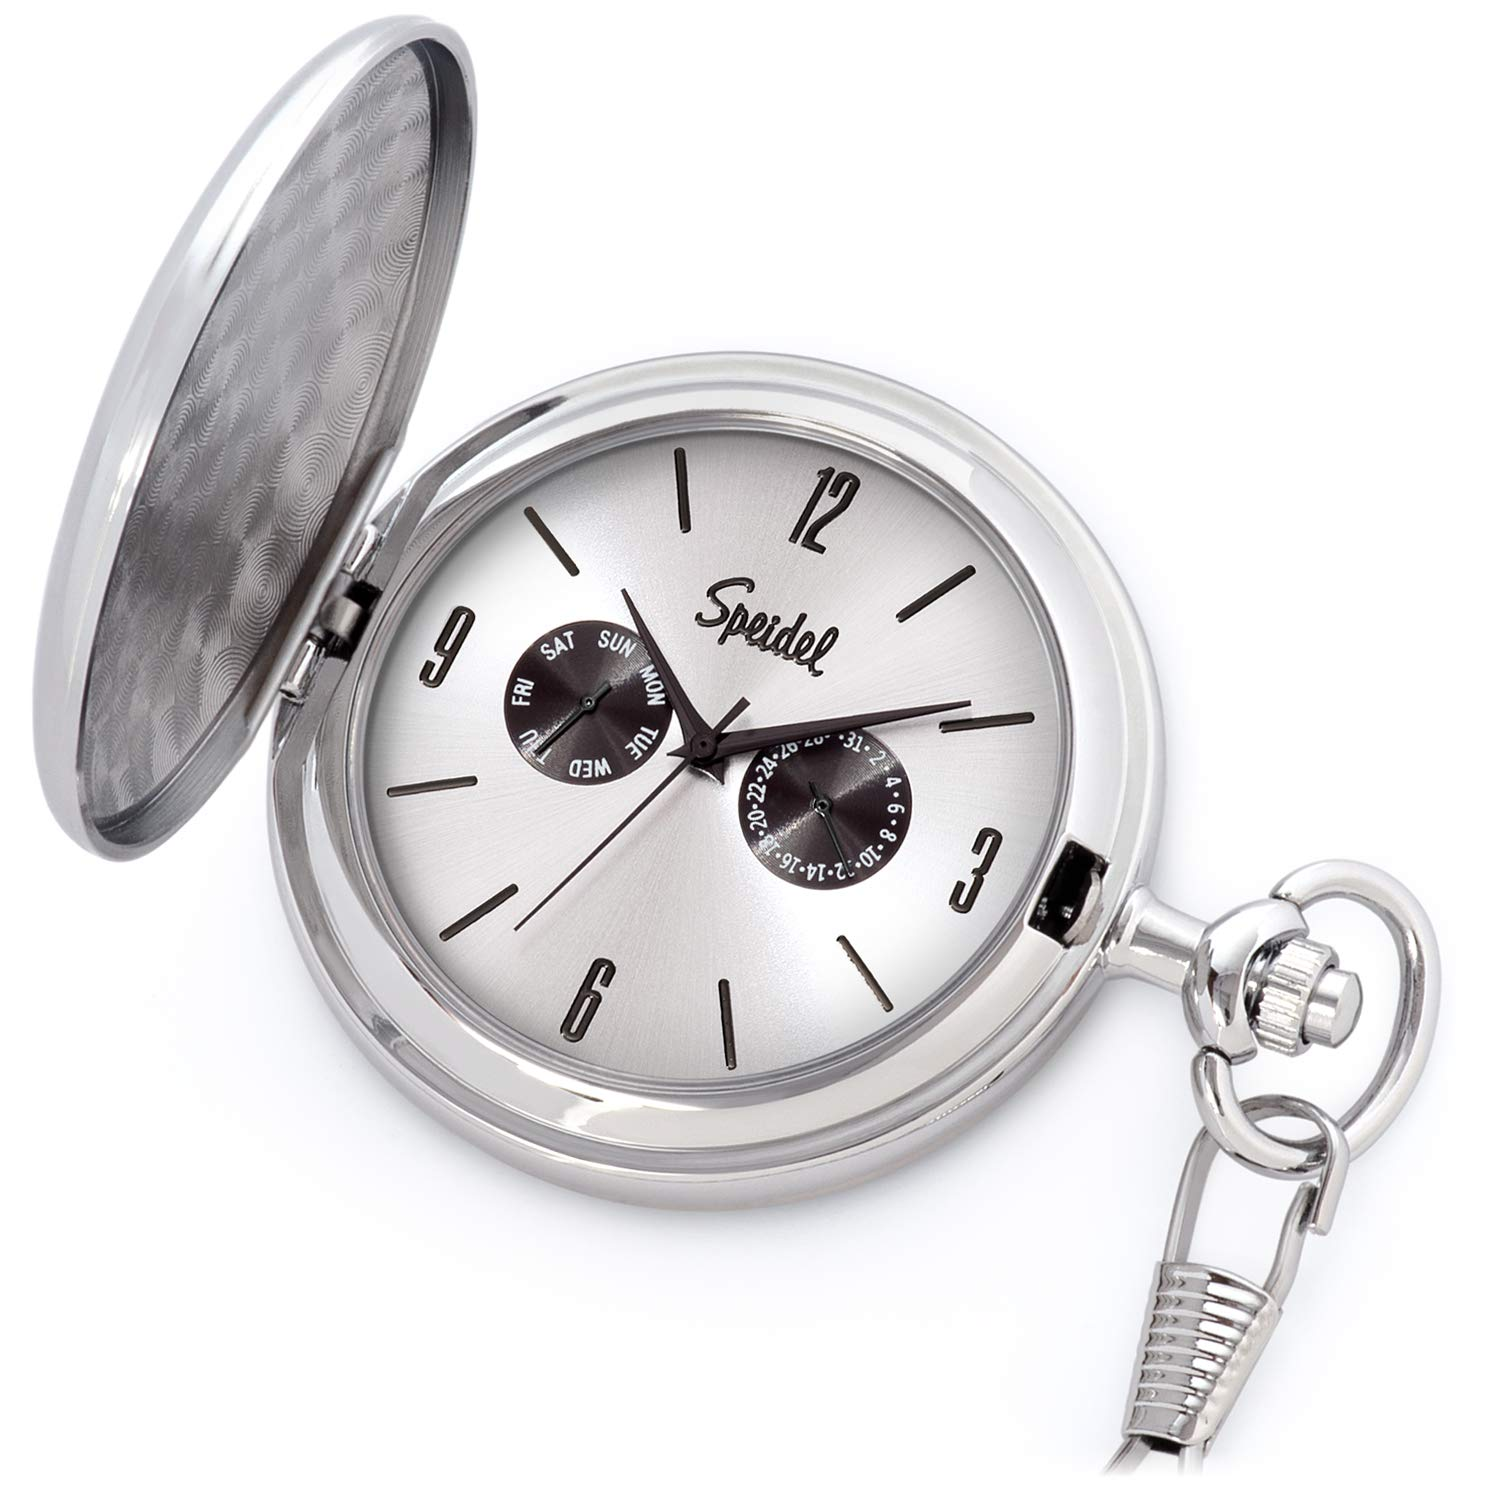 Speidel Classic Brushed Satin Silver-Tone Engravable Pocket Watch with 14'' Chain, Silver Dial, Seconds Hand, Day and Date Sub-Dials